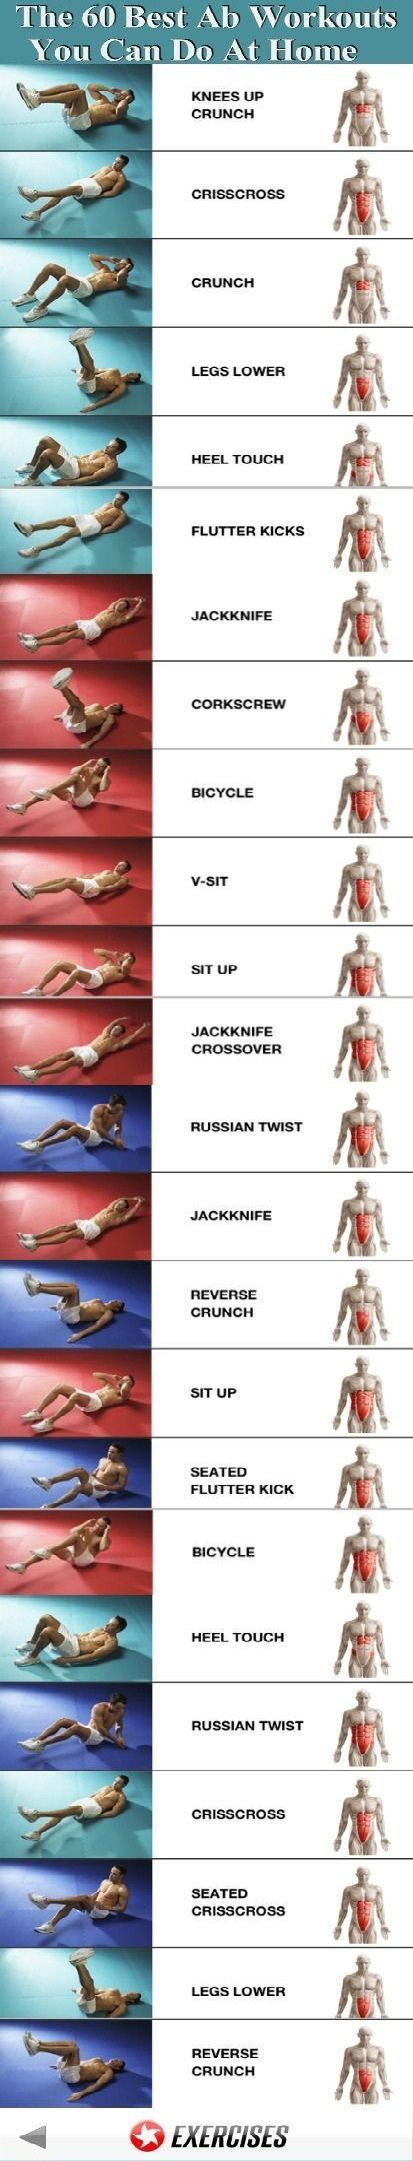 Ab Workout At Home No Equipment Part 1 https://fatdiminisherreallywork.wordpress.com/2017/05/28/best-ab-exercises-with-bar-brothers-or-who  Abs,Workout,6 pack abs,six pack abs,6 pack abs workout,six pack abs workout,six pack routine,six pack,6 pack,6 pack exercises,how to get a 6 pack,workout for a 6 pack,workout for a six pack,six pack abs exercises,6 pack training,ripped abs,toned abs,core workout,advanced abs workout,killer abs,brutal abs,at home abs,abs at home